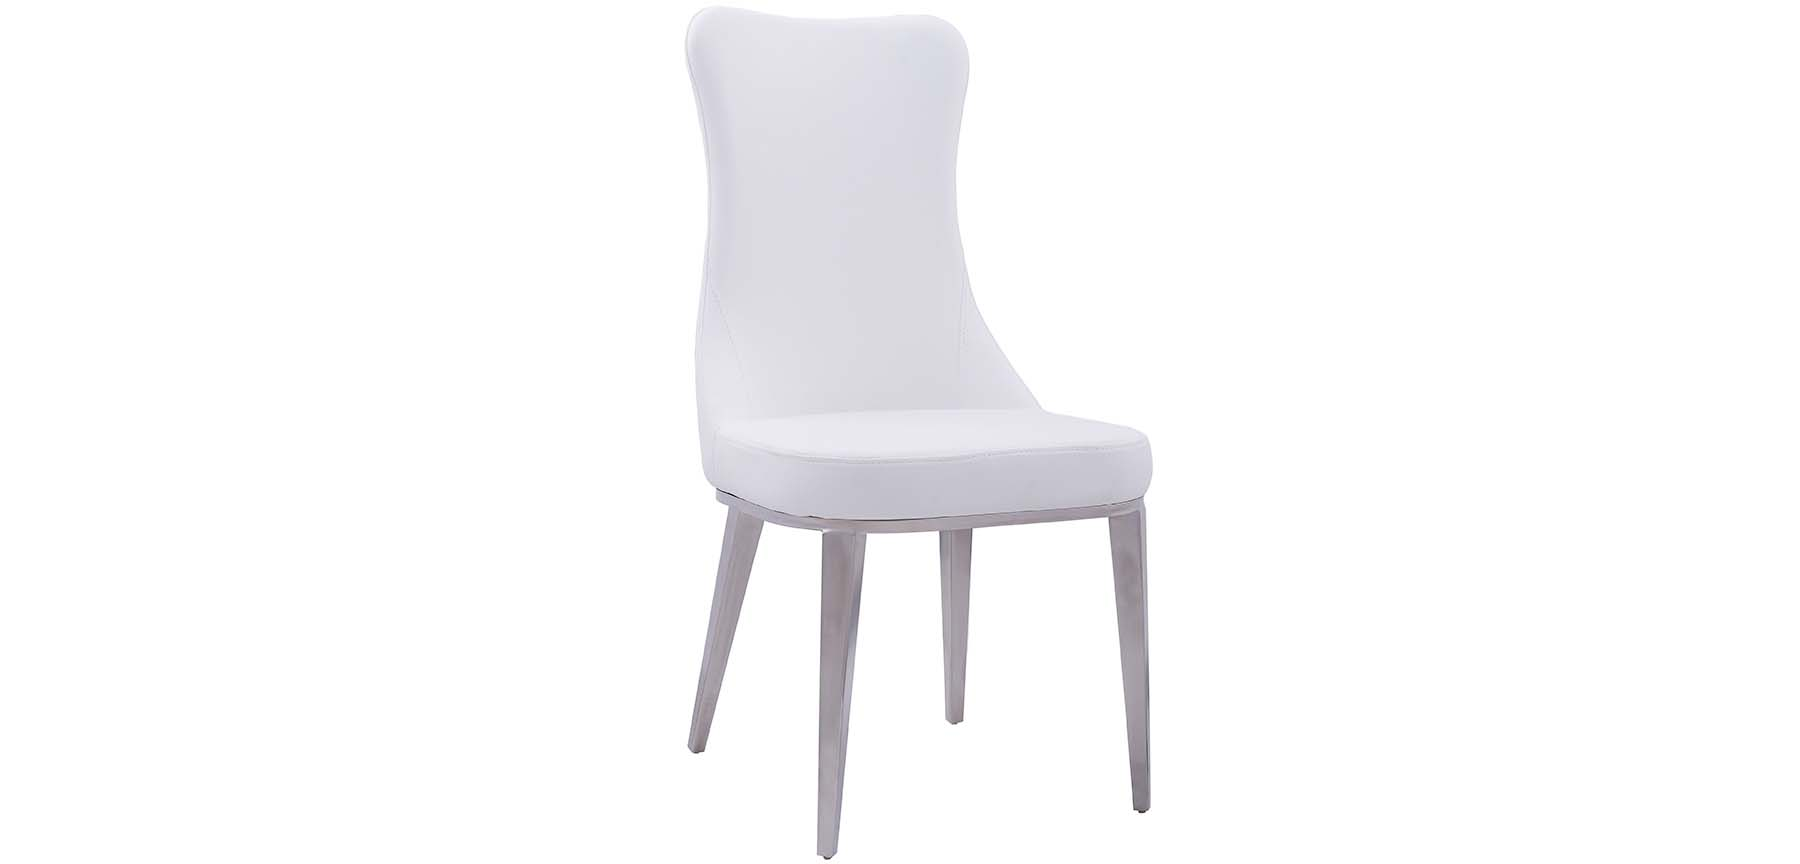 Dining Room Furniture Chairs Chair Model 6138 Solid White (no pattern)